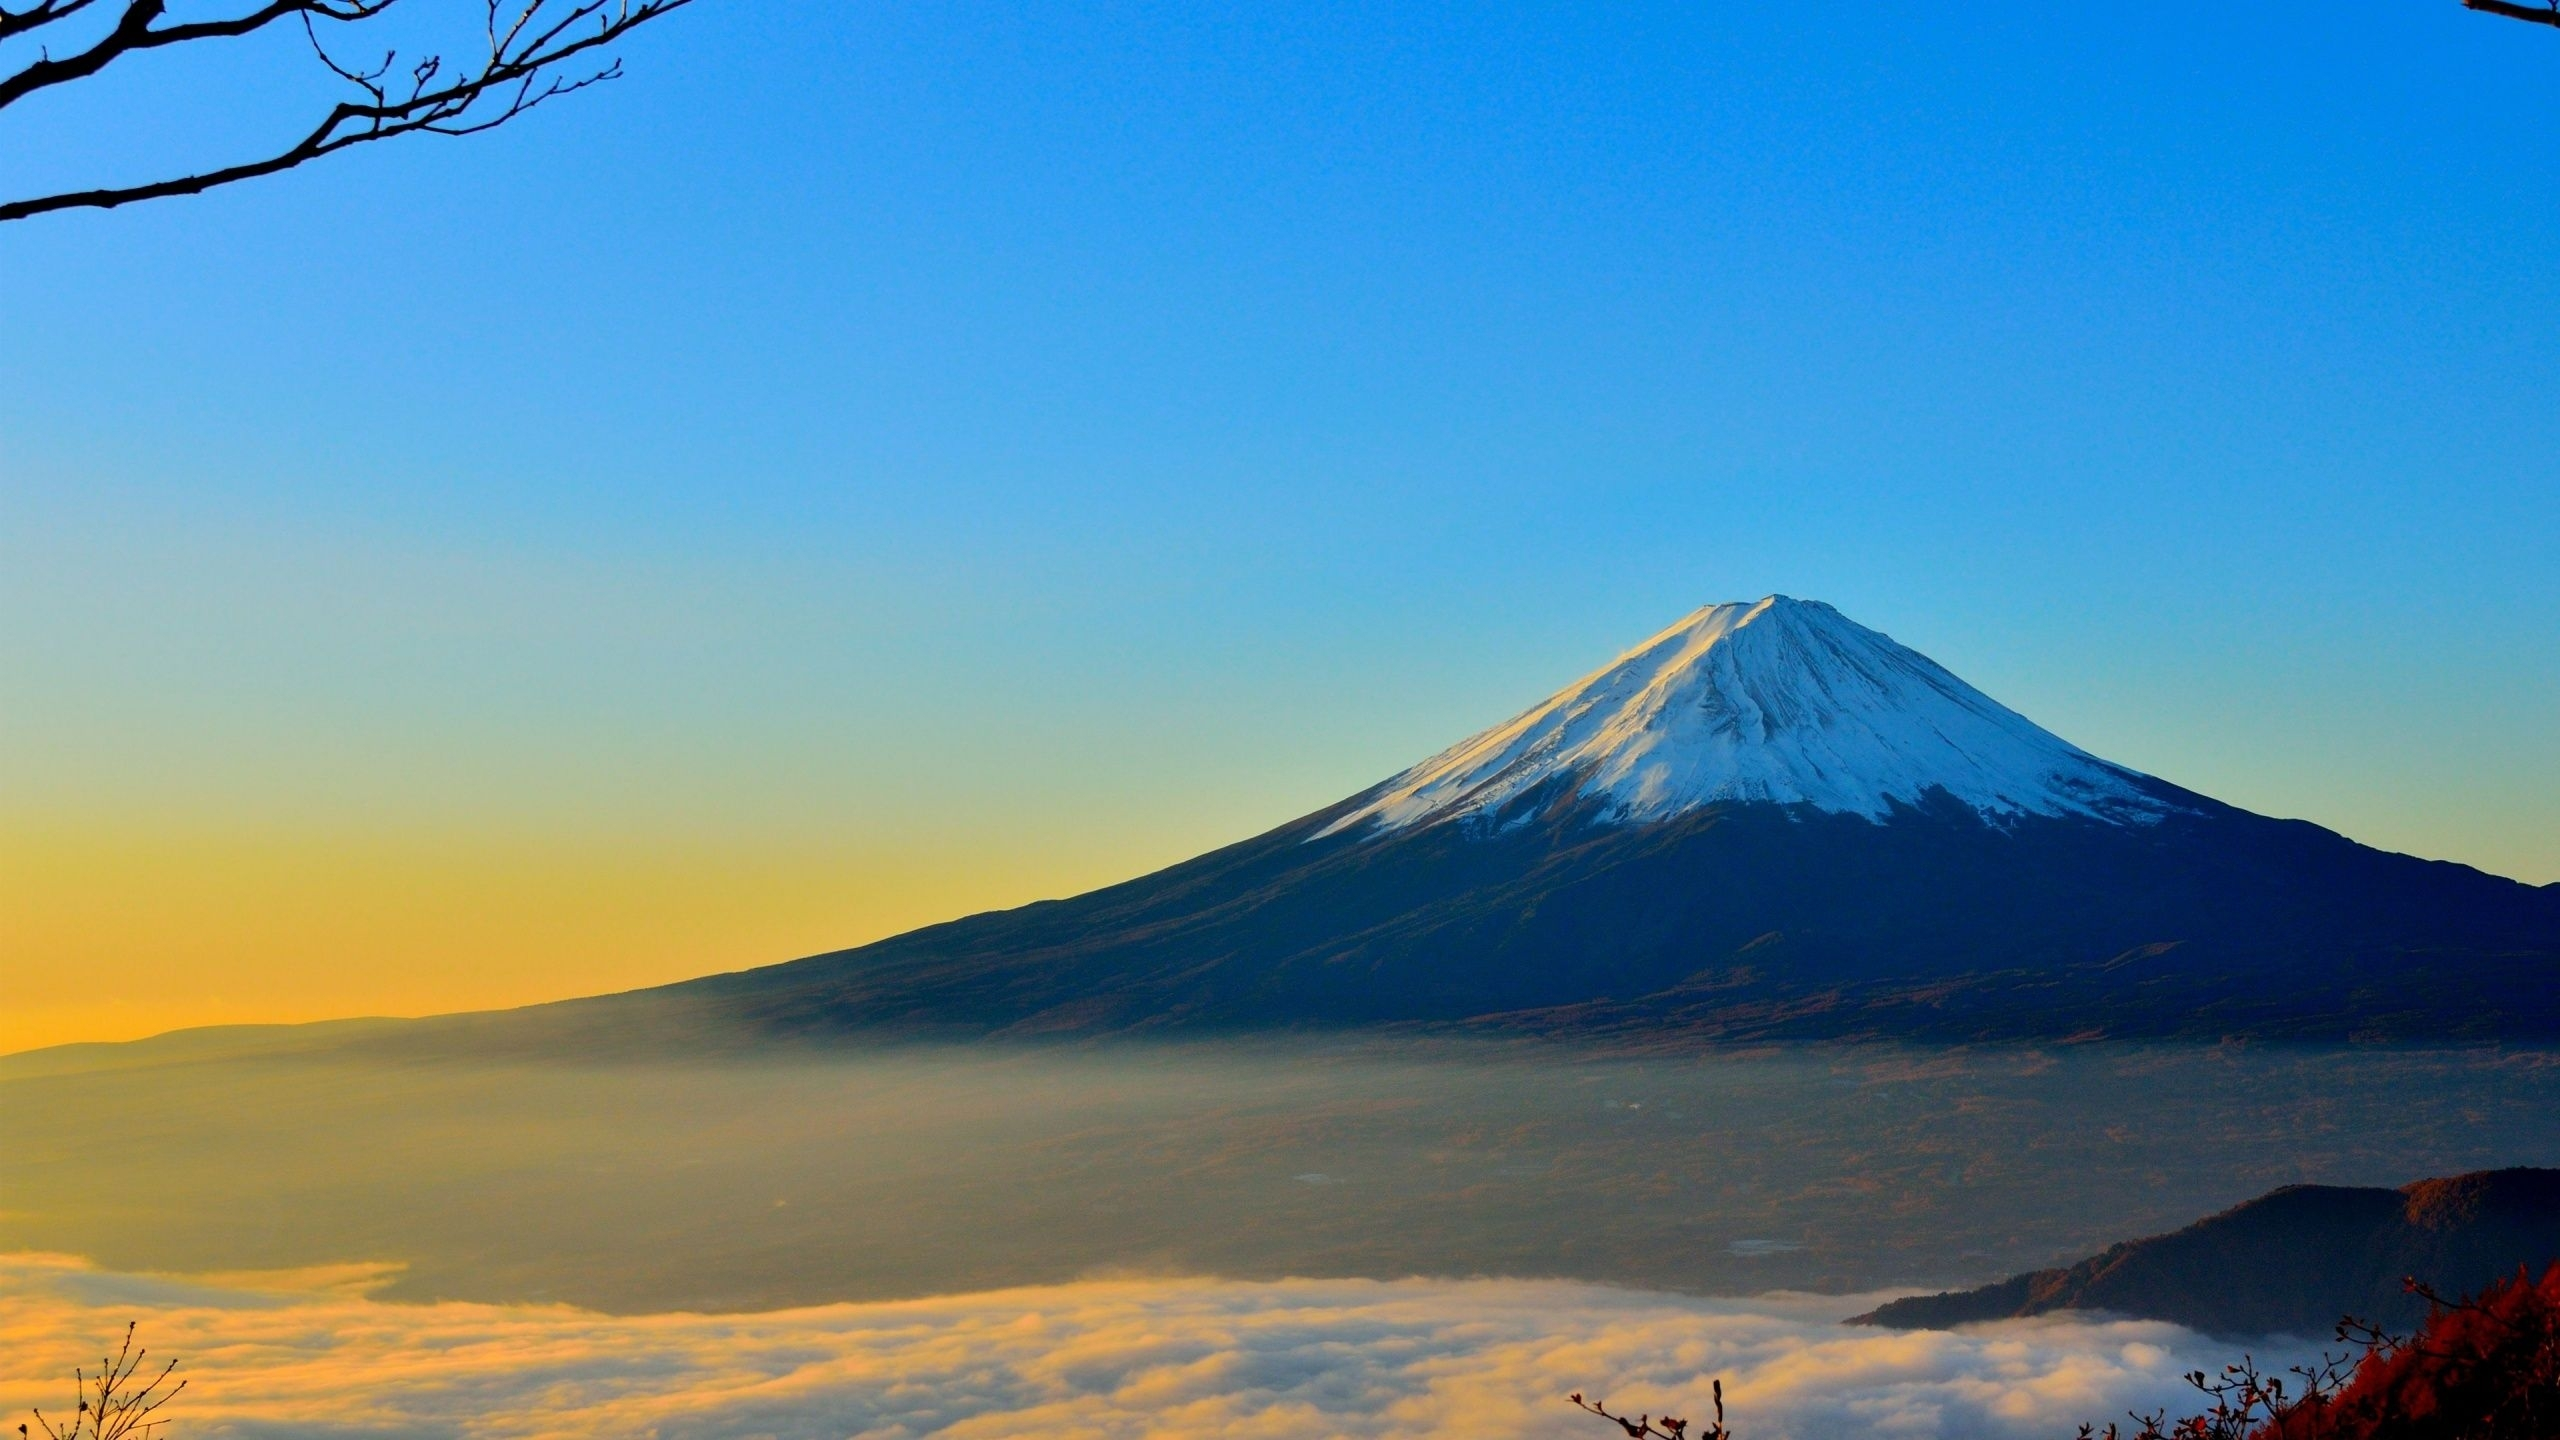 mount fuji [1920x1080] | top reddit wallpapers | pinterest